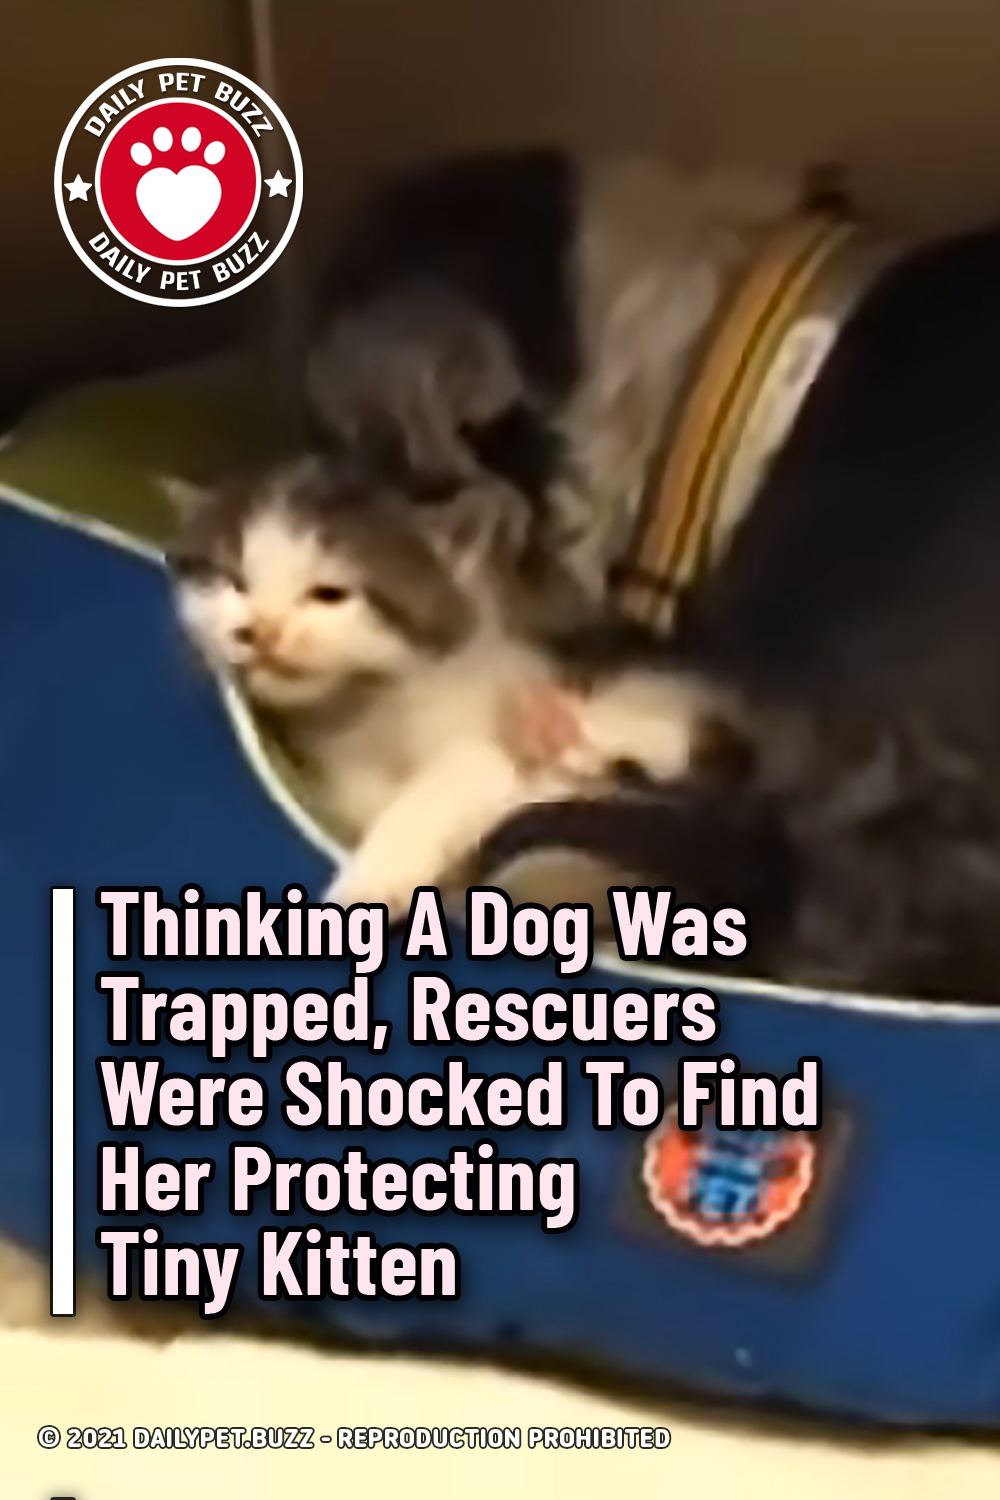 Thinking A Dog Was Trapped, Rescuers Were Shocked To Find Her Protecting Tiny Kitten